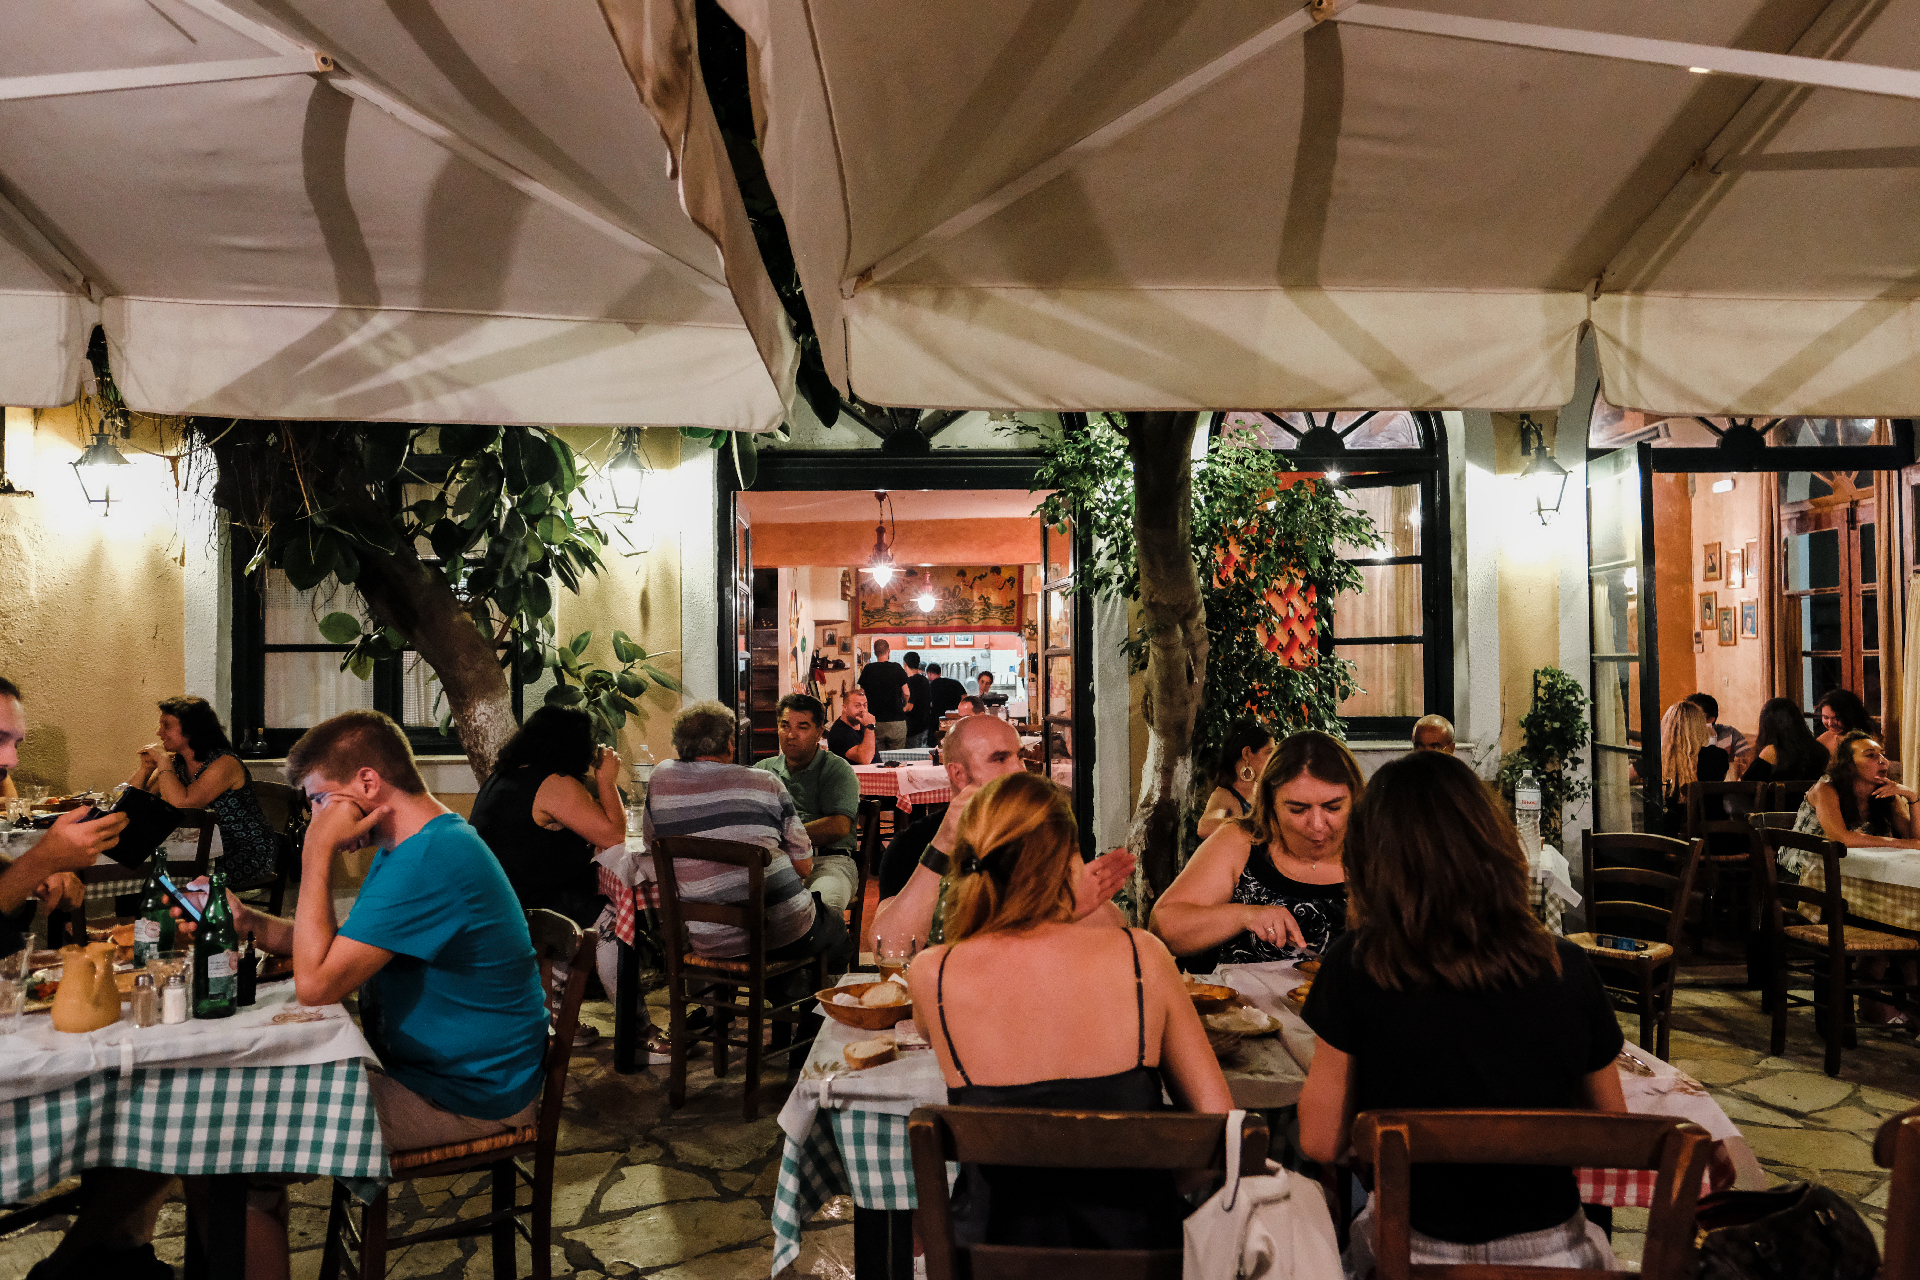 People having dinner at a restaurant, things to do in Corfu